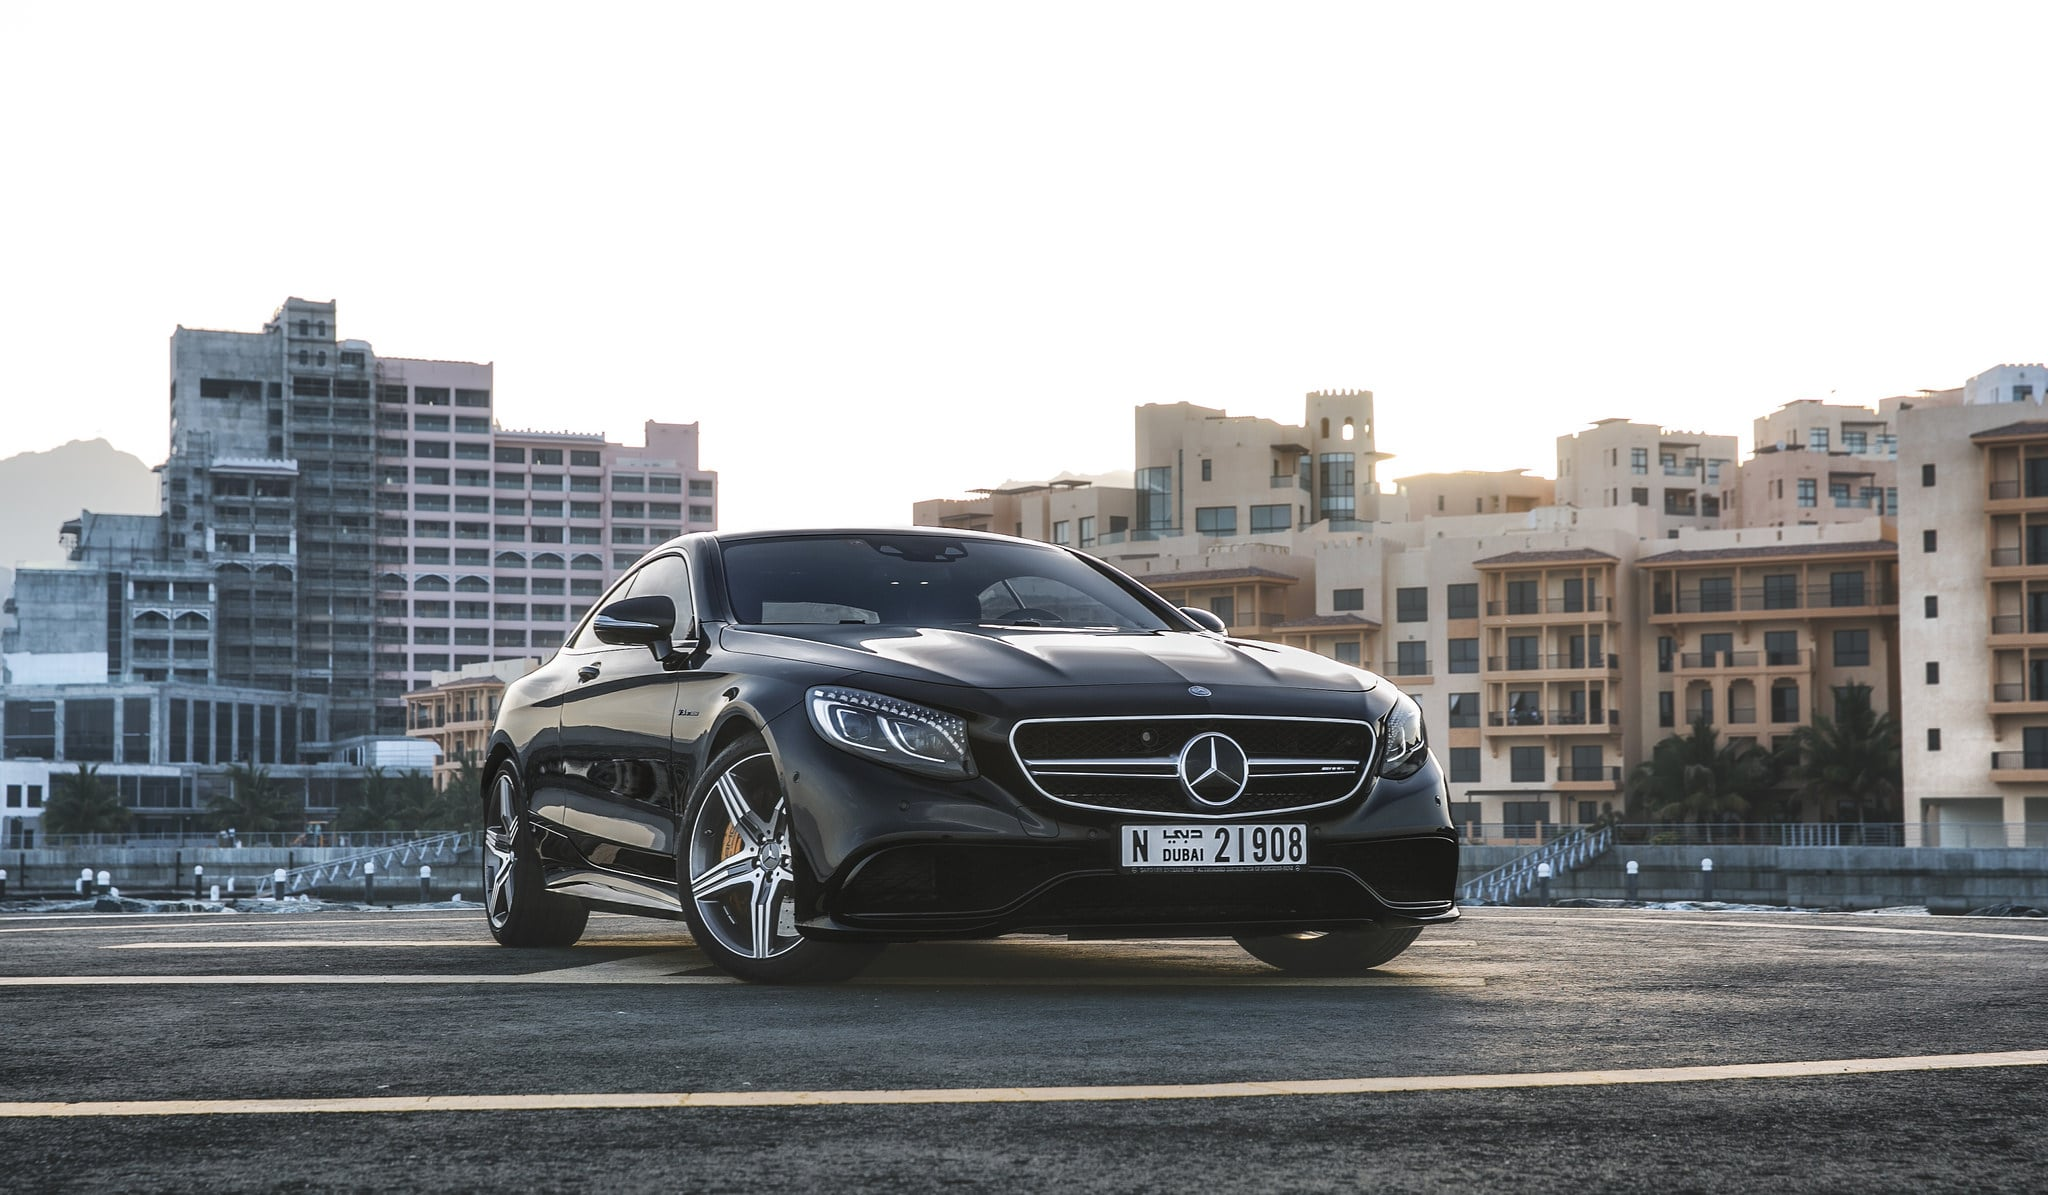 Cars Hd Wallpapers 1080p For Pc Bmw Mercedes Benz Amg S63 Coupe Wallpapers Hd Download